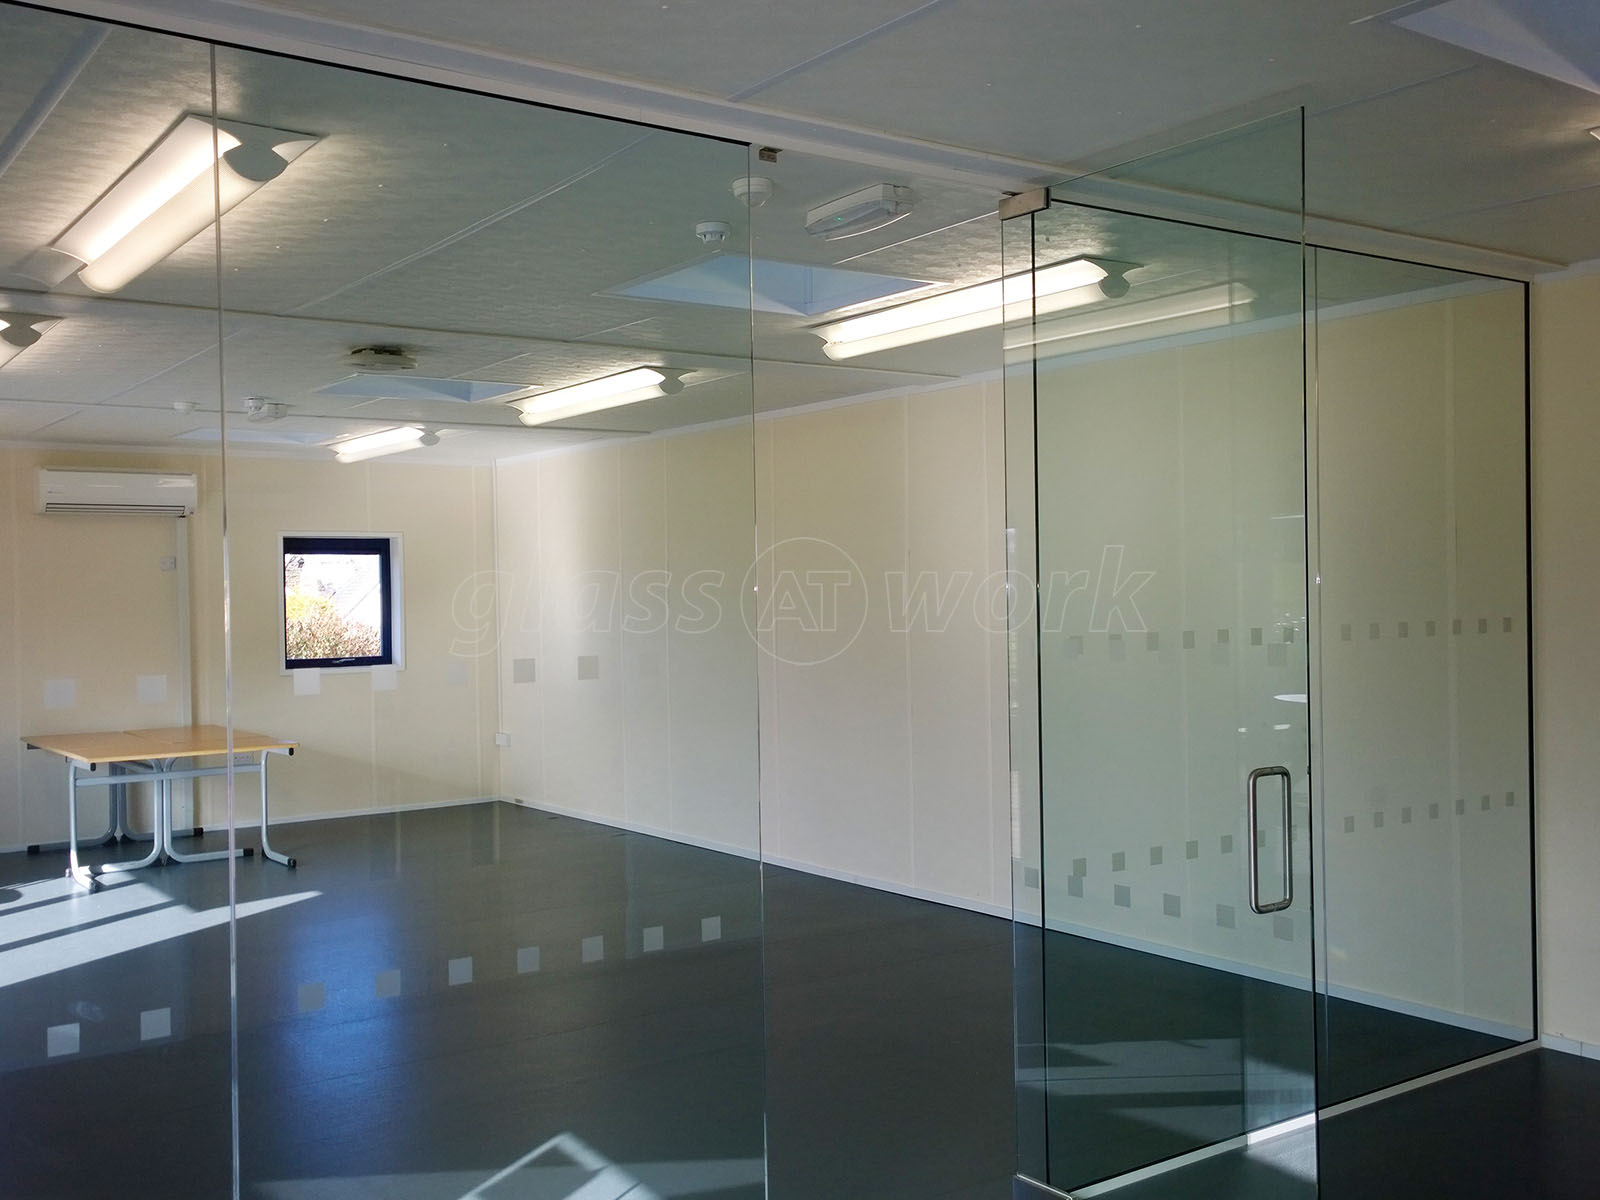 Petroc College (Barnstaple Devon) Frameless Glass Wall and Door & Glass Partitioning at Petroc College (Barnstaple Devon): Frameless ...